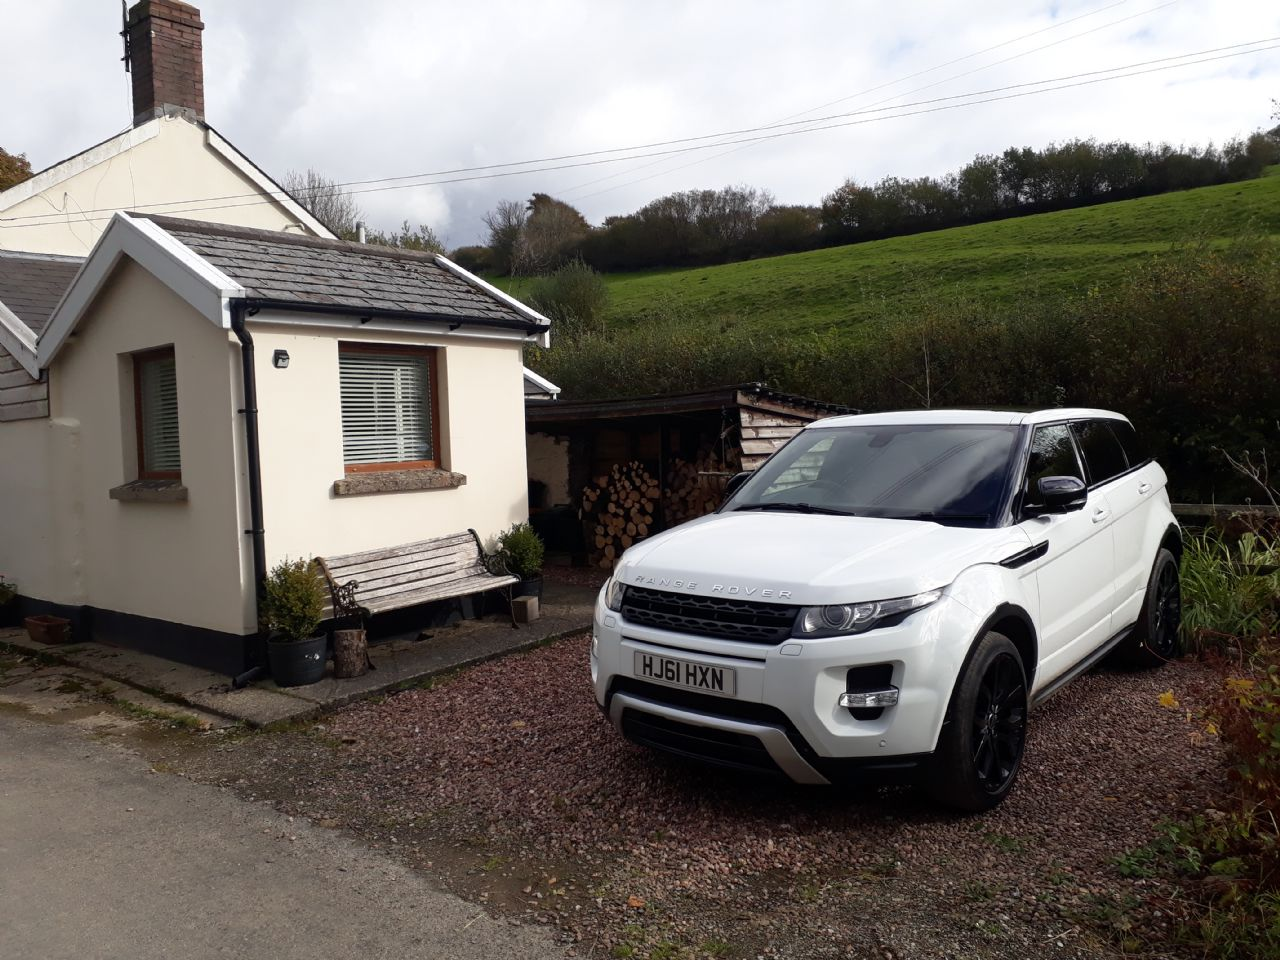 LAND ROVER RANGE ROVER EVOQUE SD4 190HP Auto 4WD dynamic \lux pack - Picture 3